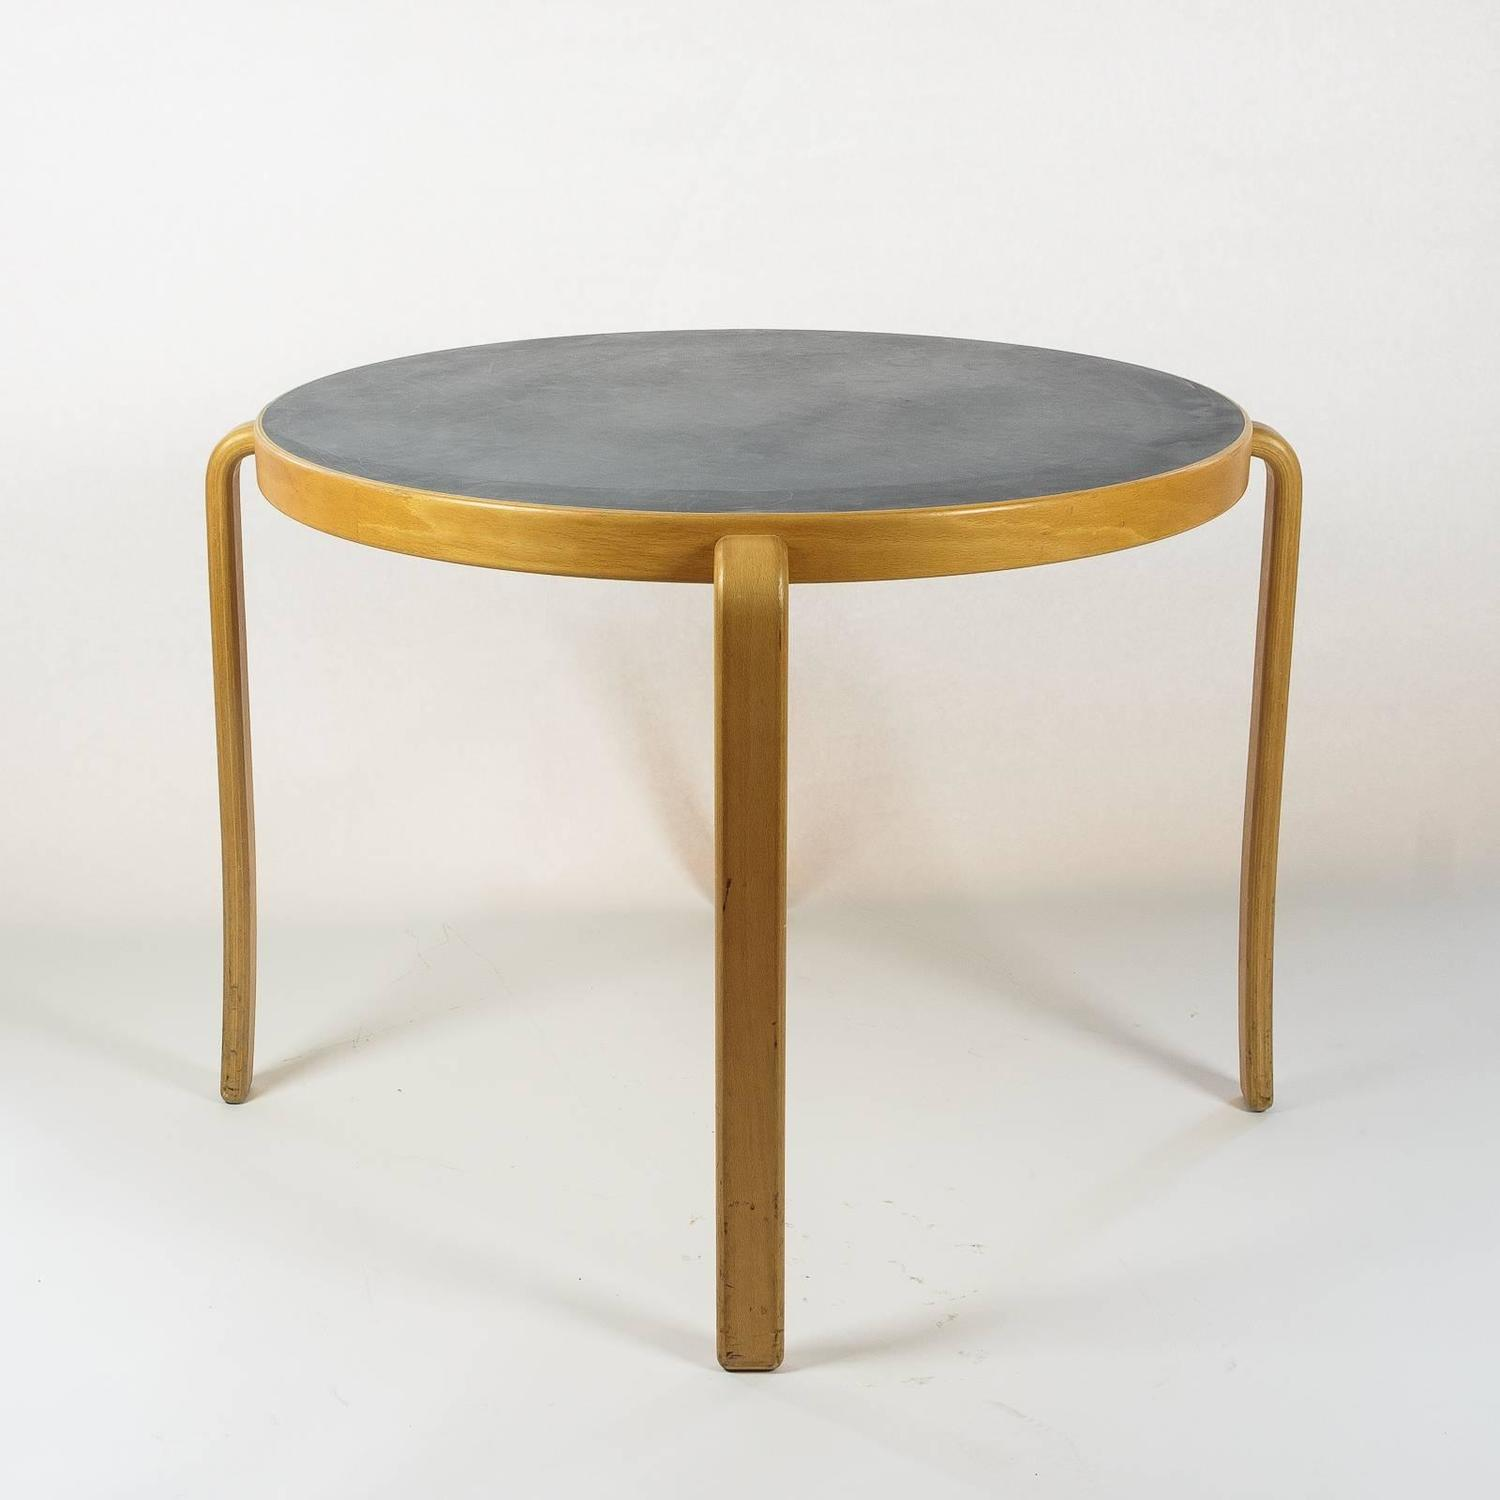 39 8000 serie 39 table by magnus olesen at 1stdibs. Black Bedroom Furniture Sets. Home Design Ideas